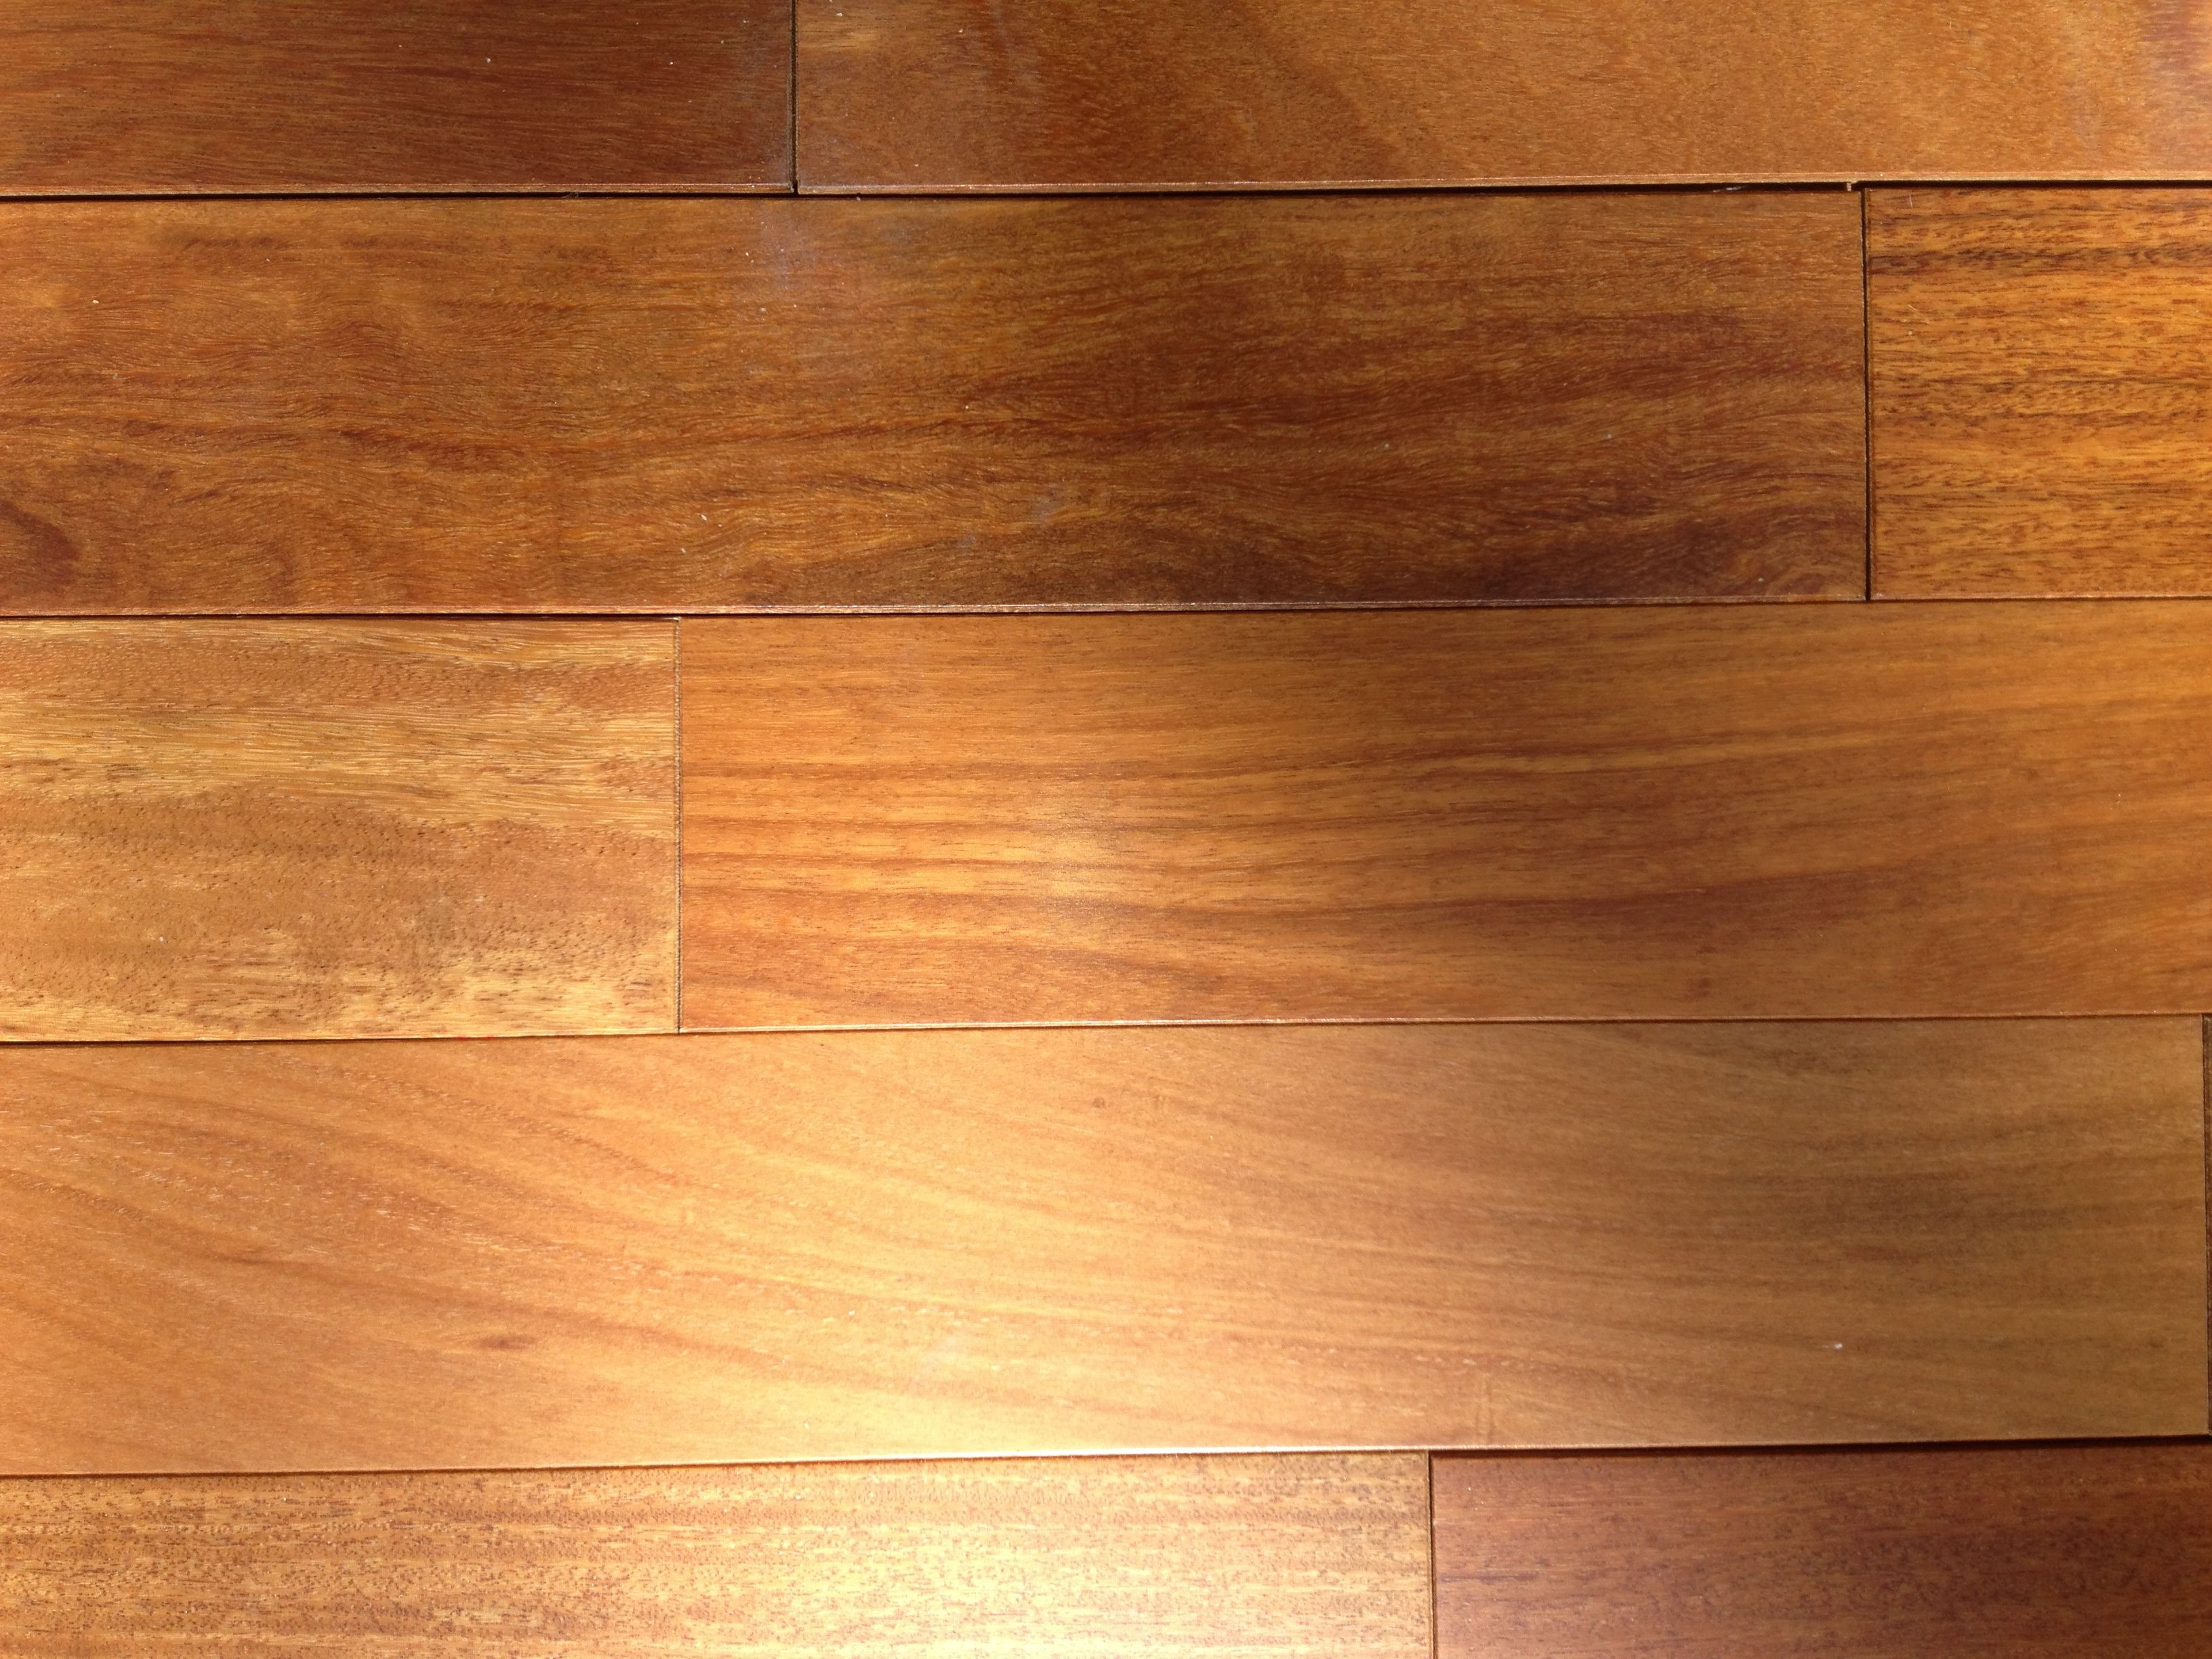 Brazilian Teak Cumaru Hardwood Flooring Flooring Hardwood Floors Engineered Wood Floors